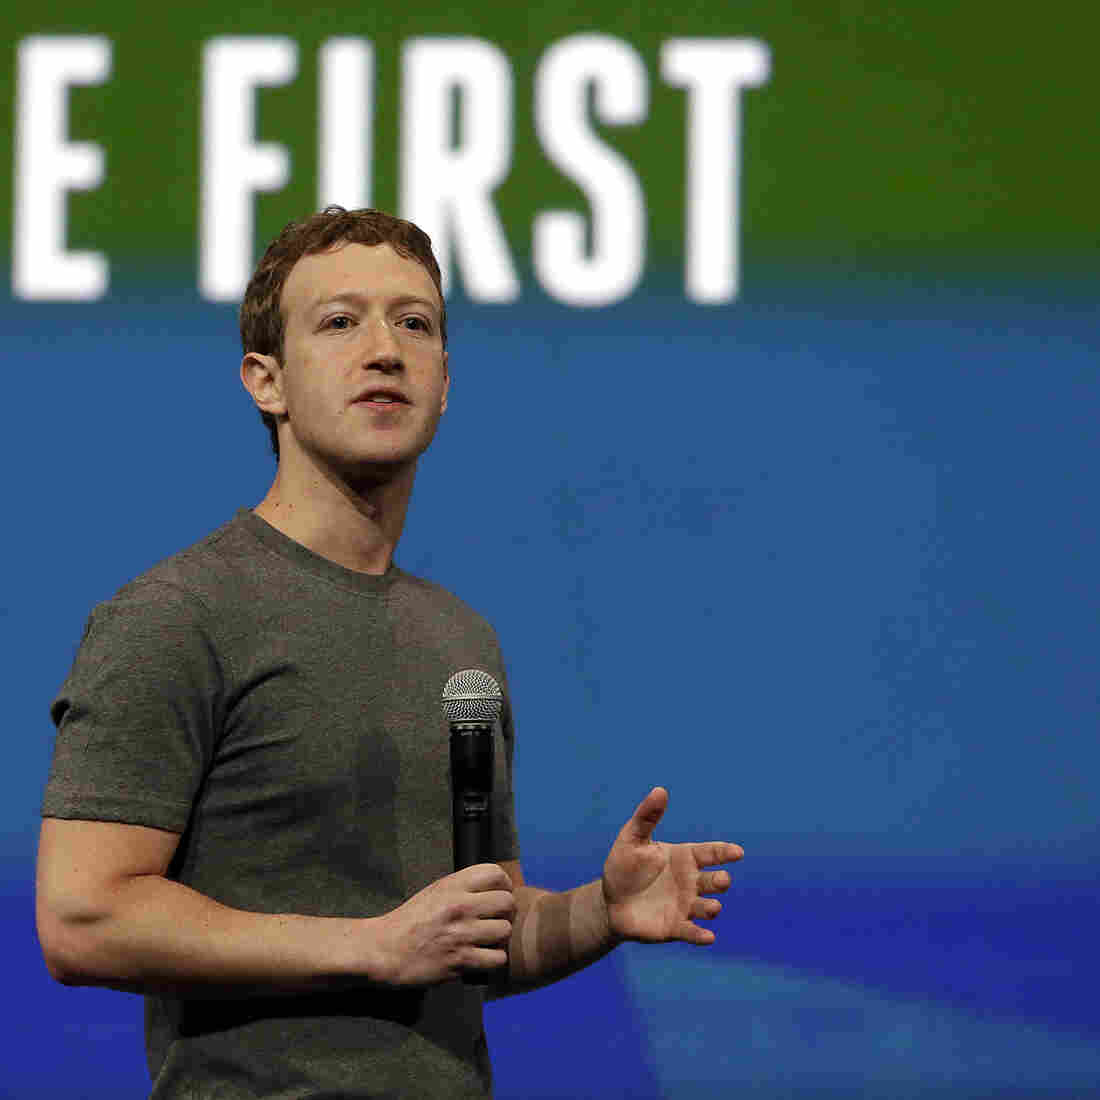 Facebook CEO Mark Zuckerberg has launched an Ebola donation campaign on the website and tossed in $25 million of his money to help fight the virus.